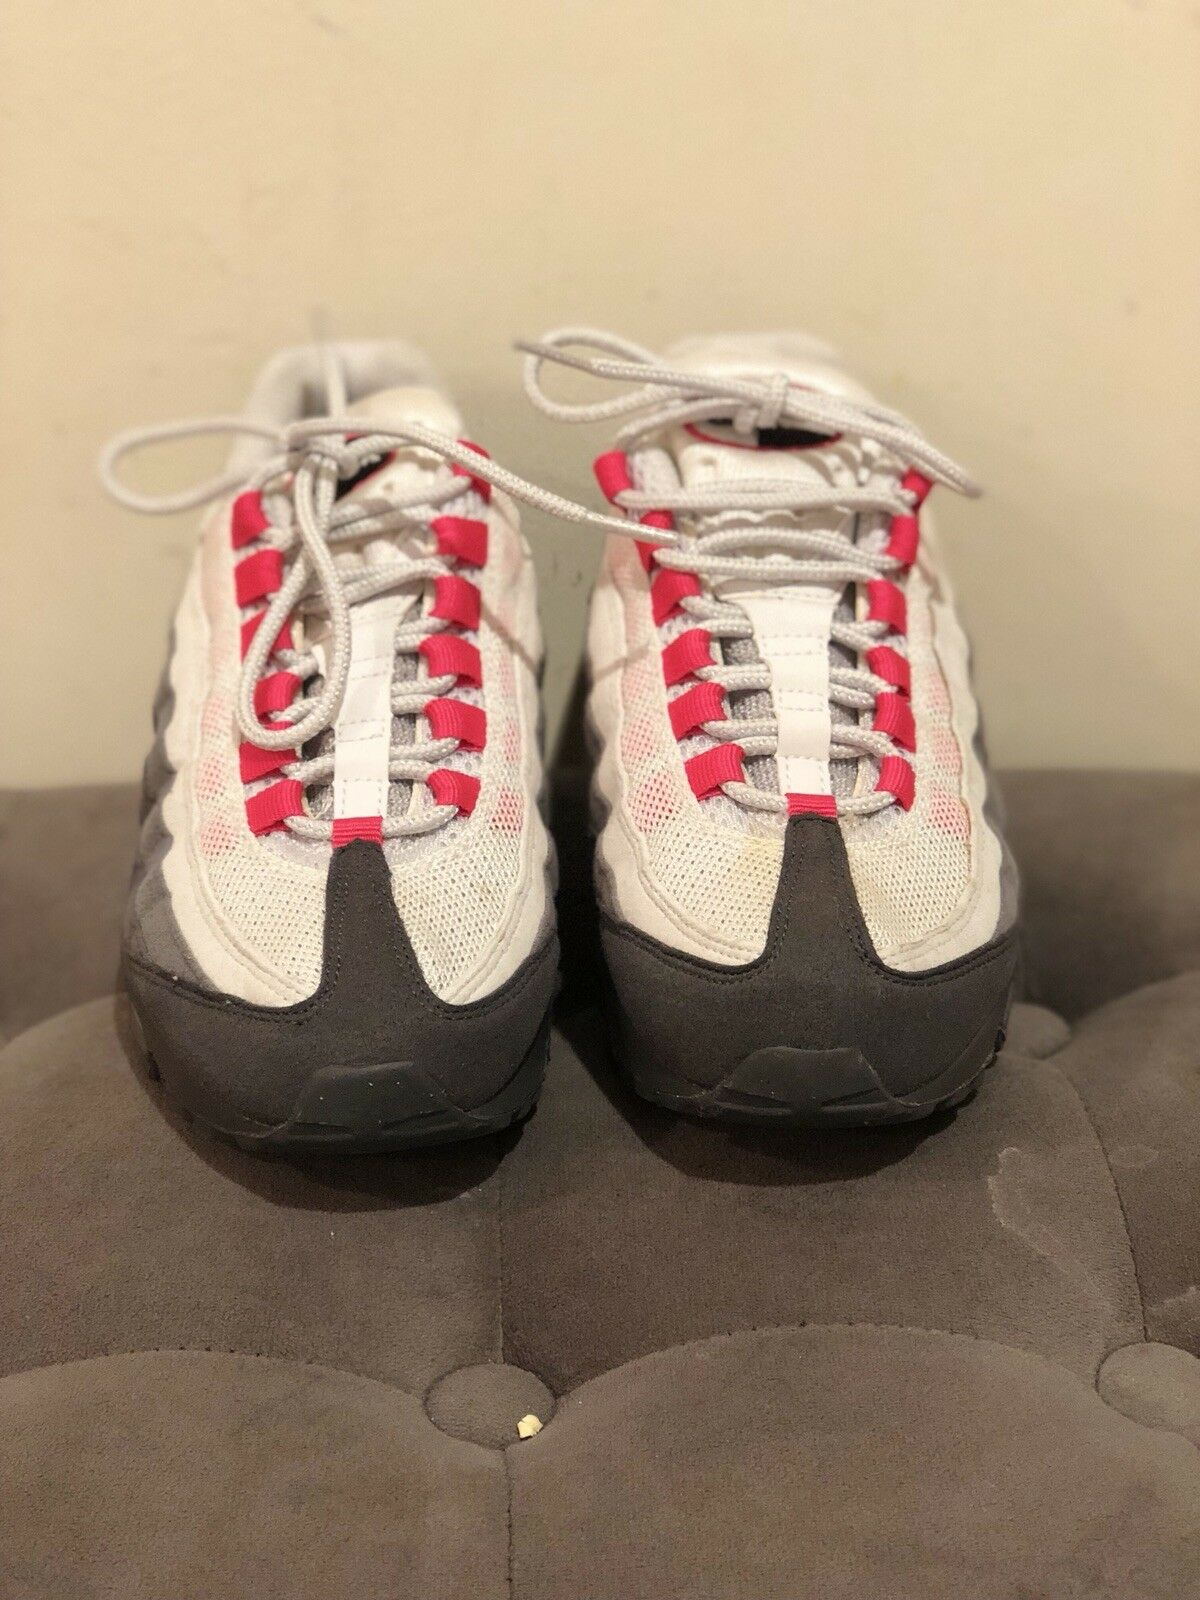 WMNS NIKE AIR MAX 95 WM ANTHRACITE-CHERRY PINK-GREY SZ 6.5 [336620-020]